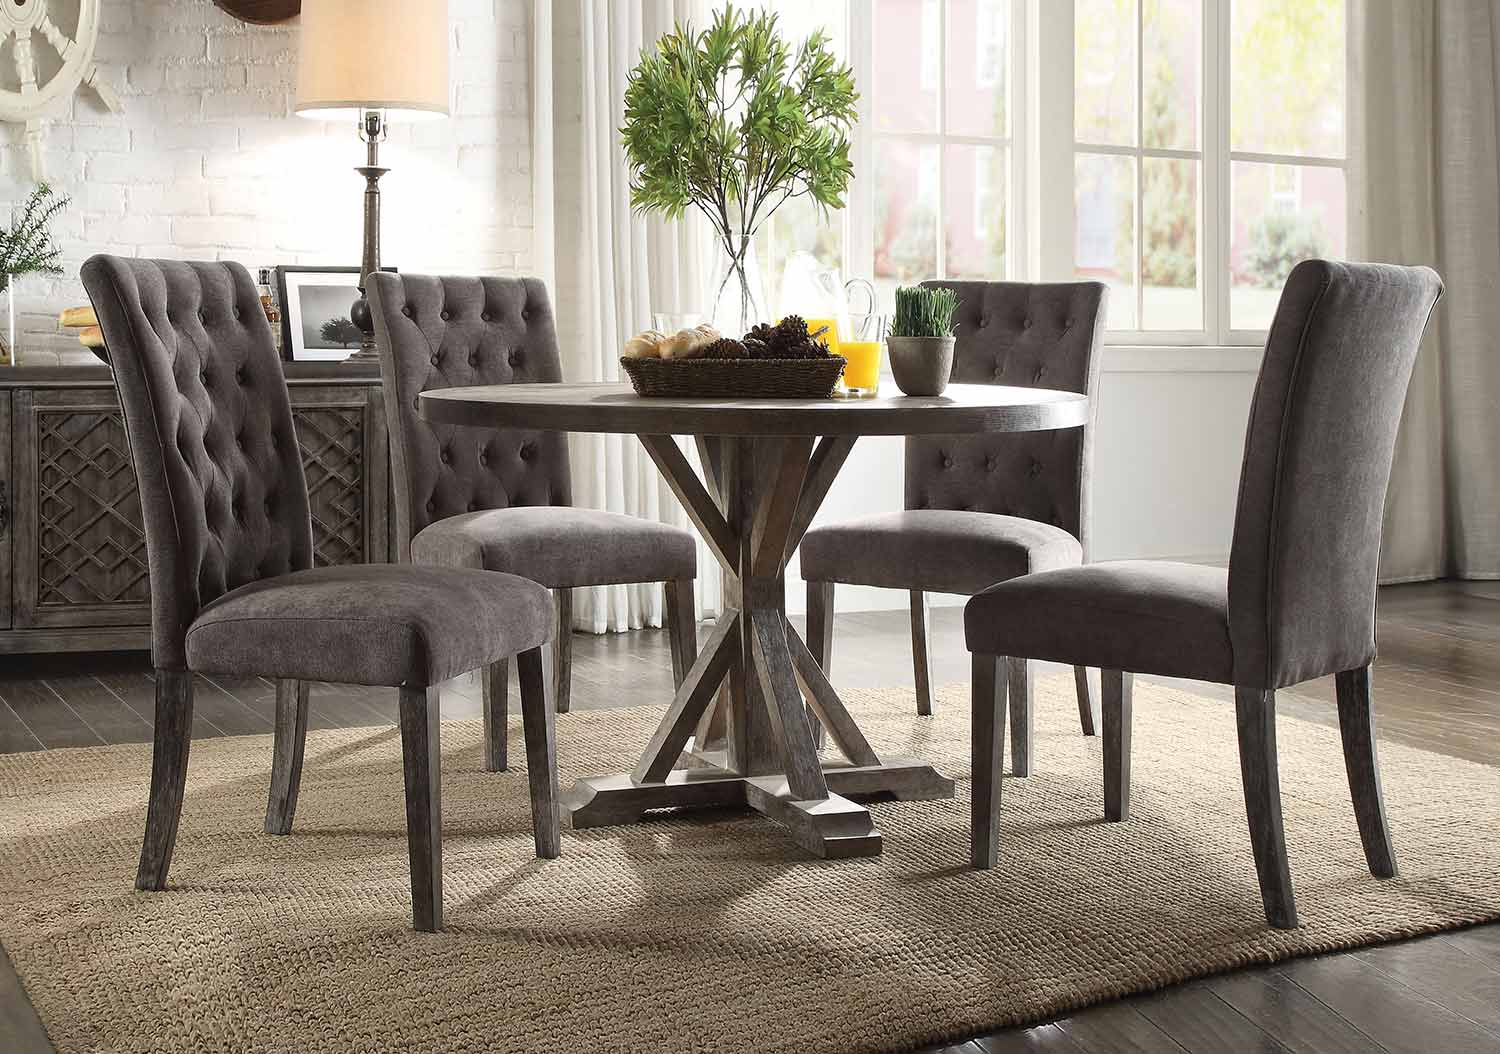 Acme Carmelina Dining Set - Weathered Gray Oak